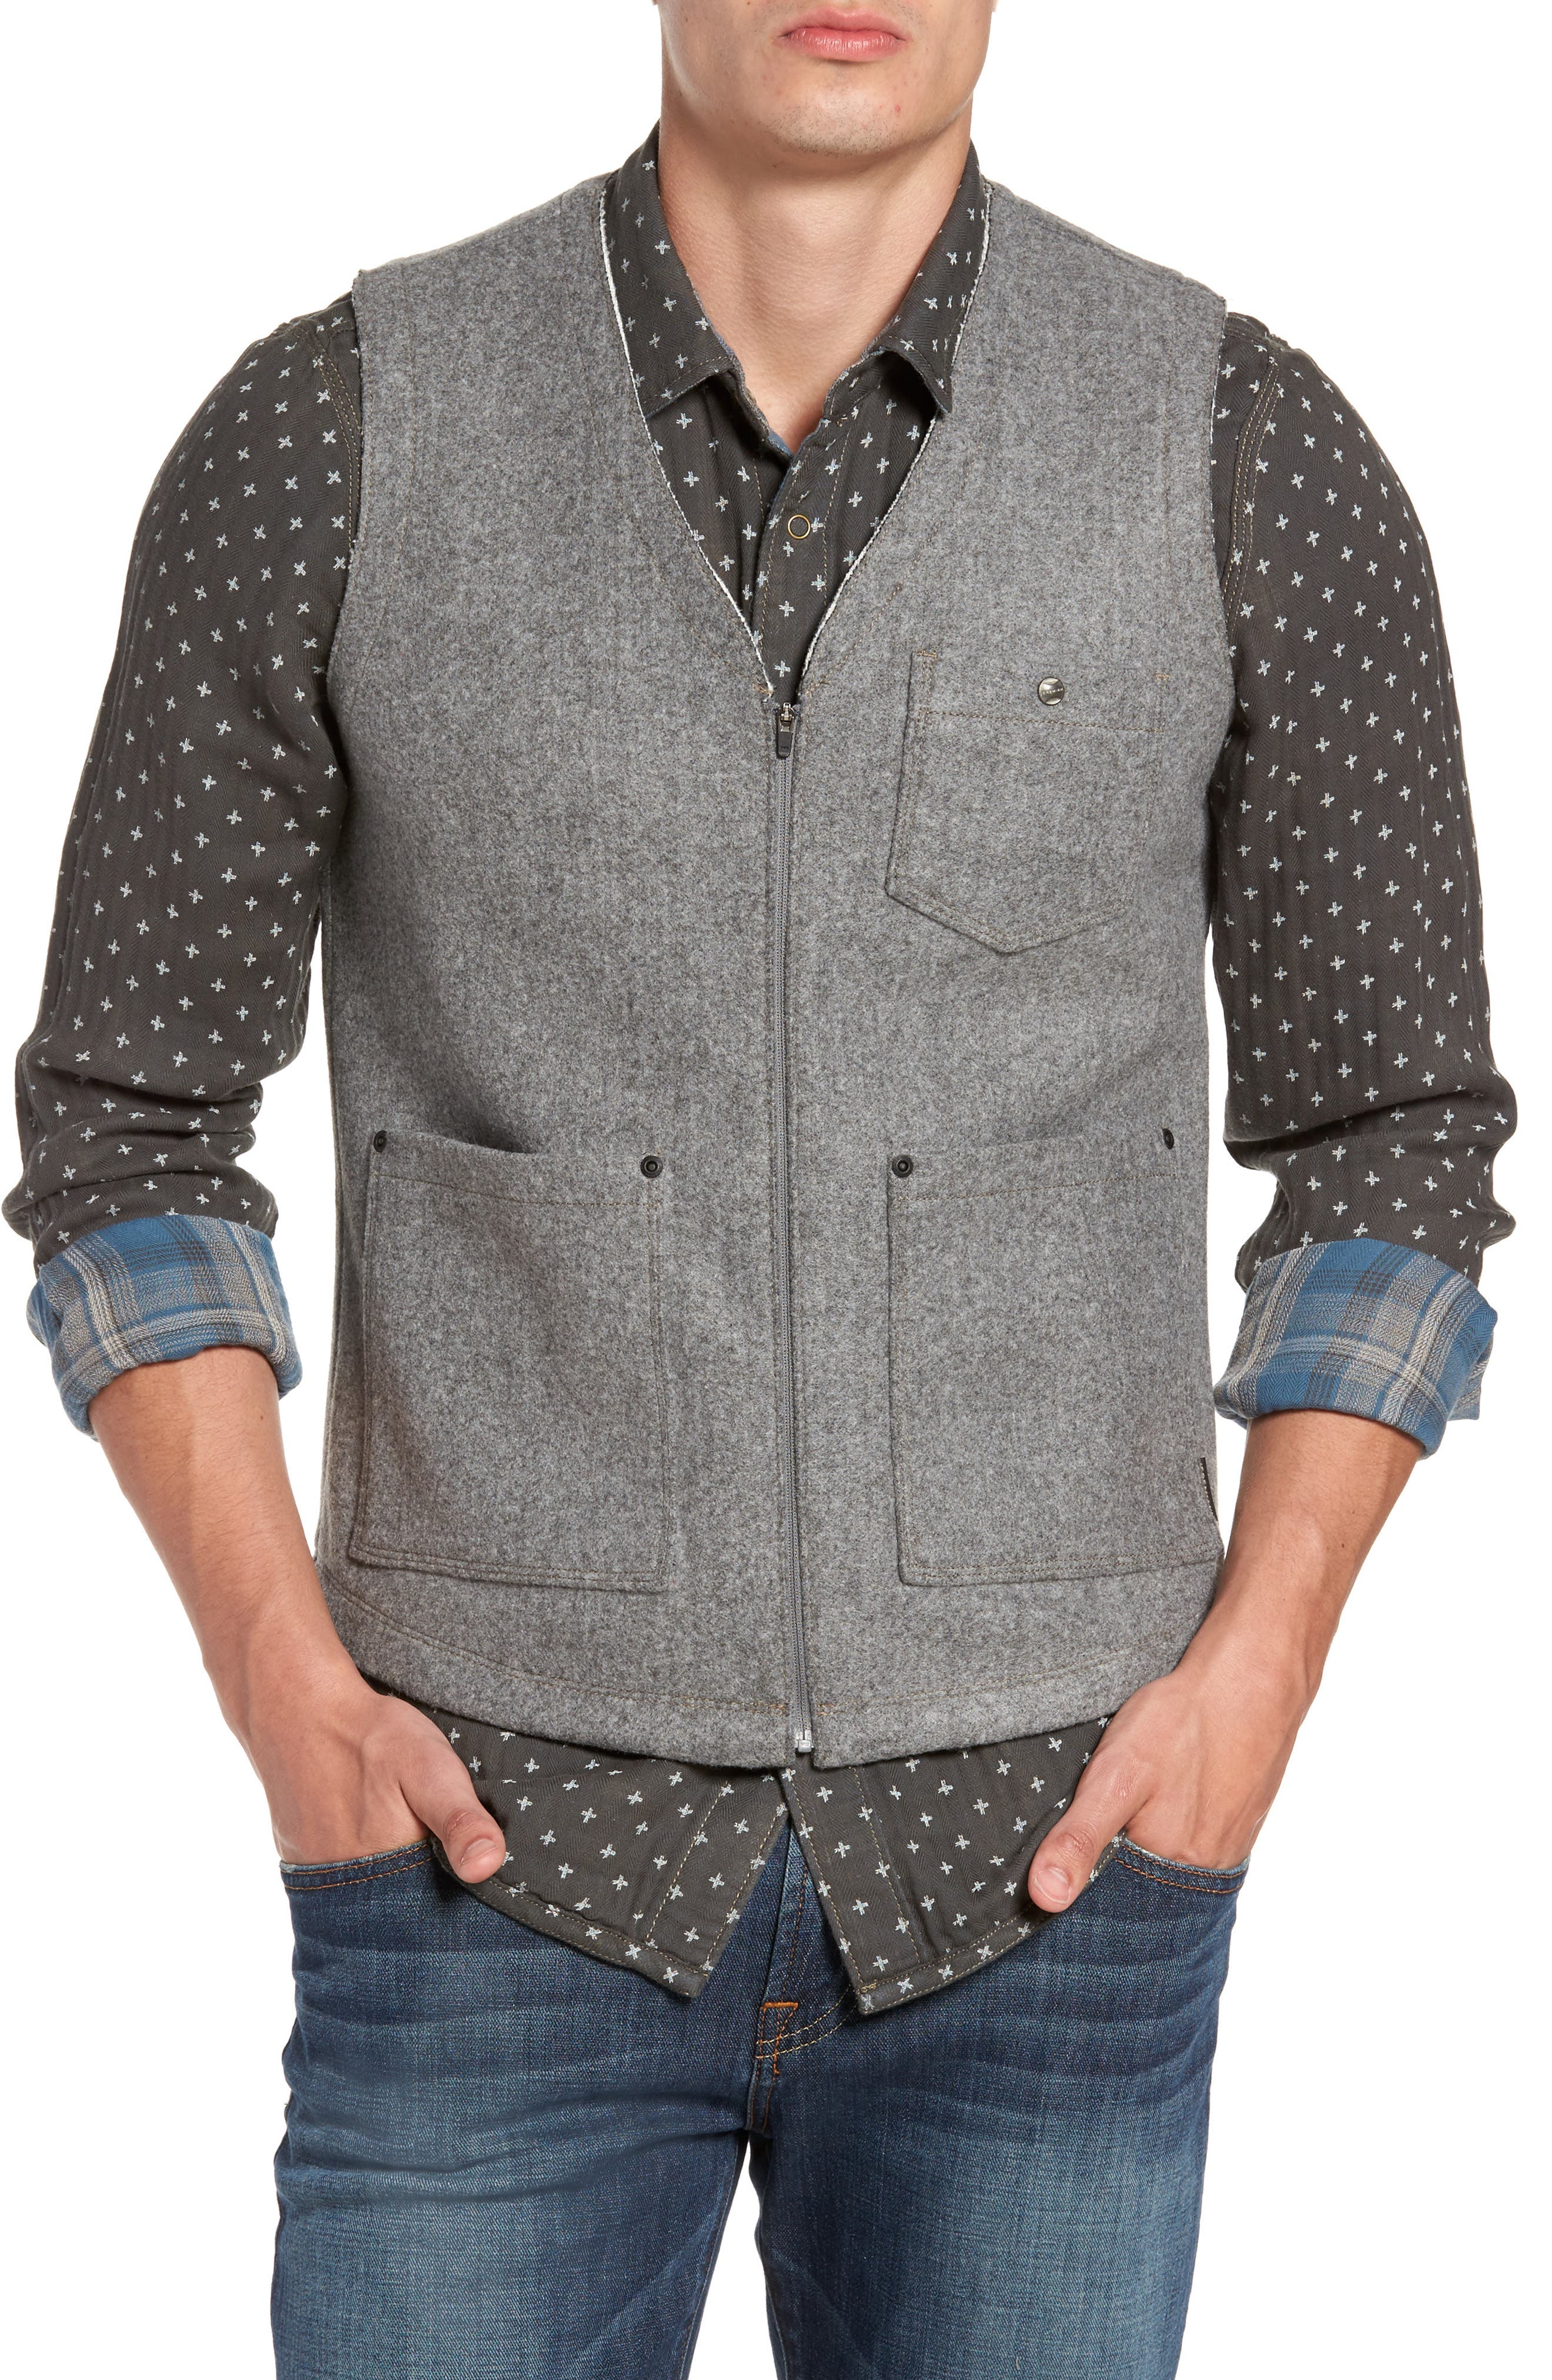 Cambria Heathered Zip Vest,                             Main thumbnail 1, color,                             Smoked Pearl